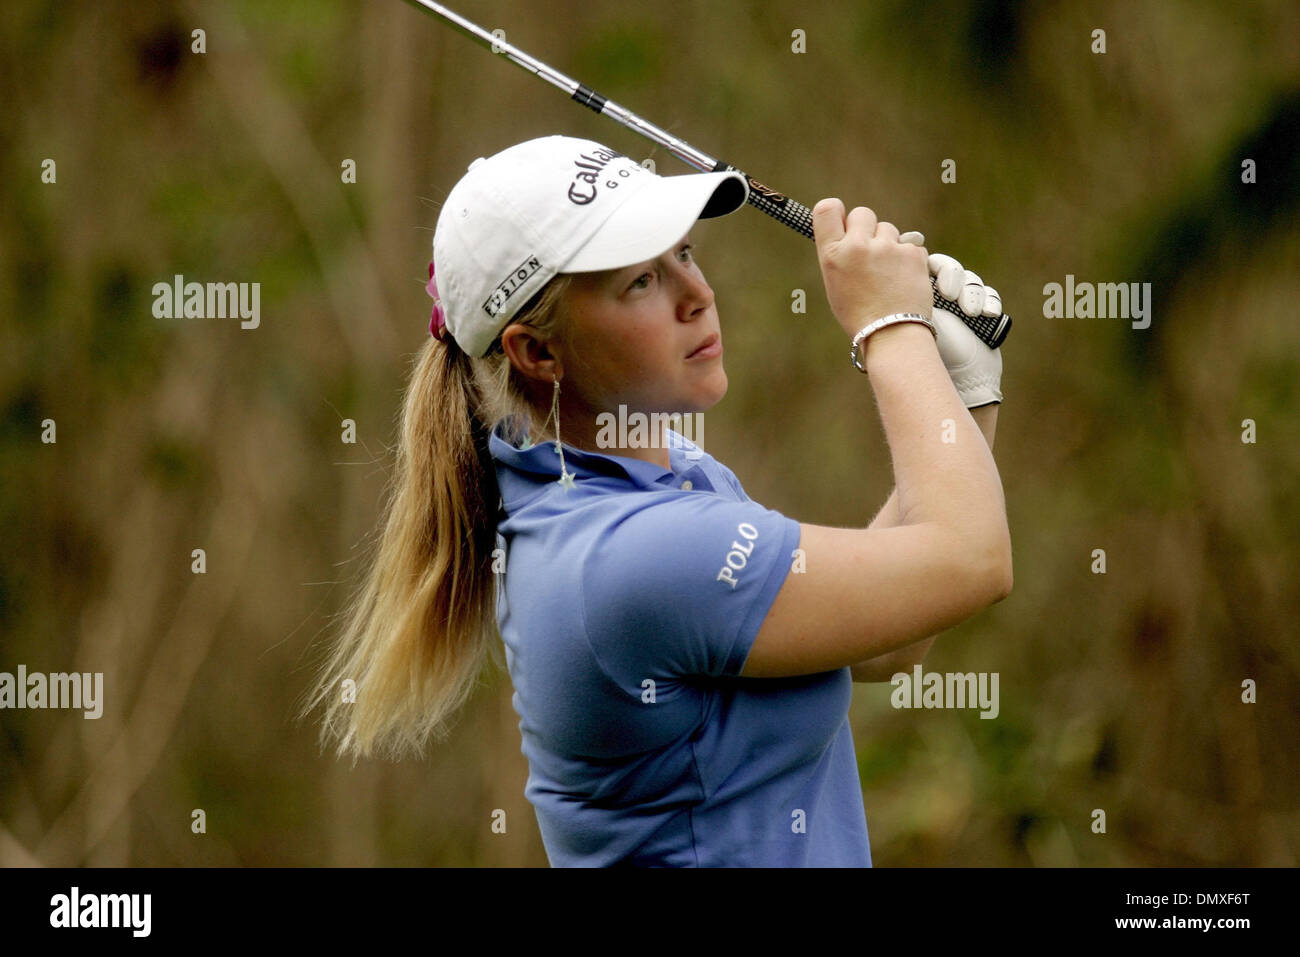 Feb 15, 2006; Oahu, HI, USA; Morgan Pressel watches after hitting her ball during Wednesday's SBS Open Turtle Bay Resort Official Pro-Am, held on the North Shore in Oahu, Hawaii.  Mandatory Credit: Photo by Libby Volgyes/Palm Beach Post/ZUMA Press. (©) Copyright 2006 by Palm Beach Post - Stock Image